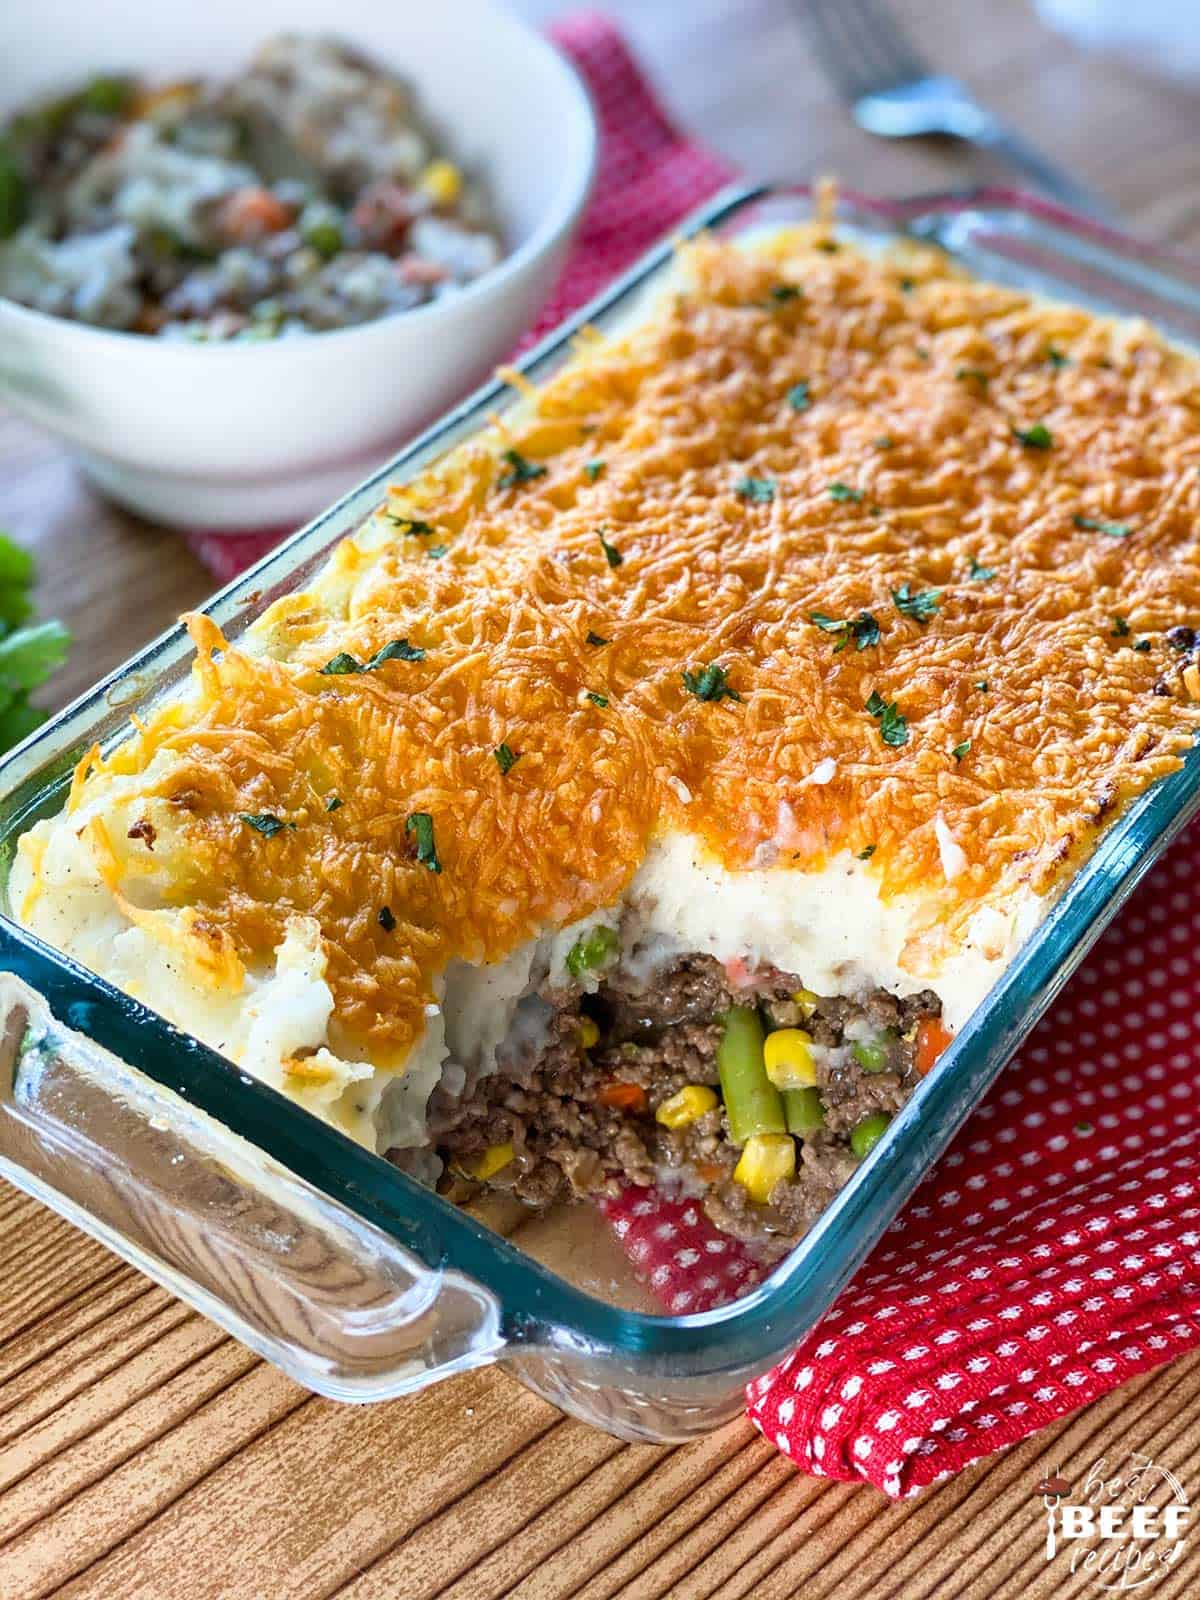 Shepherd's Pie in a casserole dish with a portion served in a white bowl